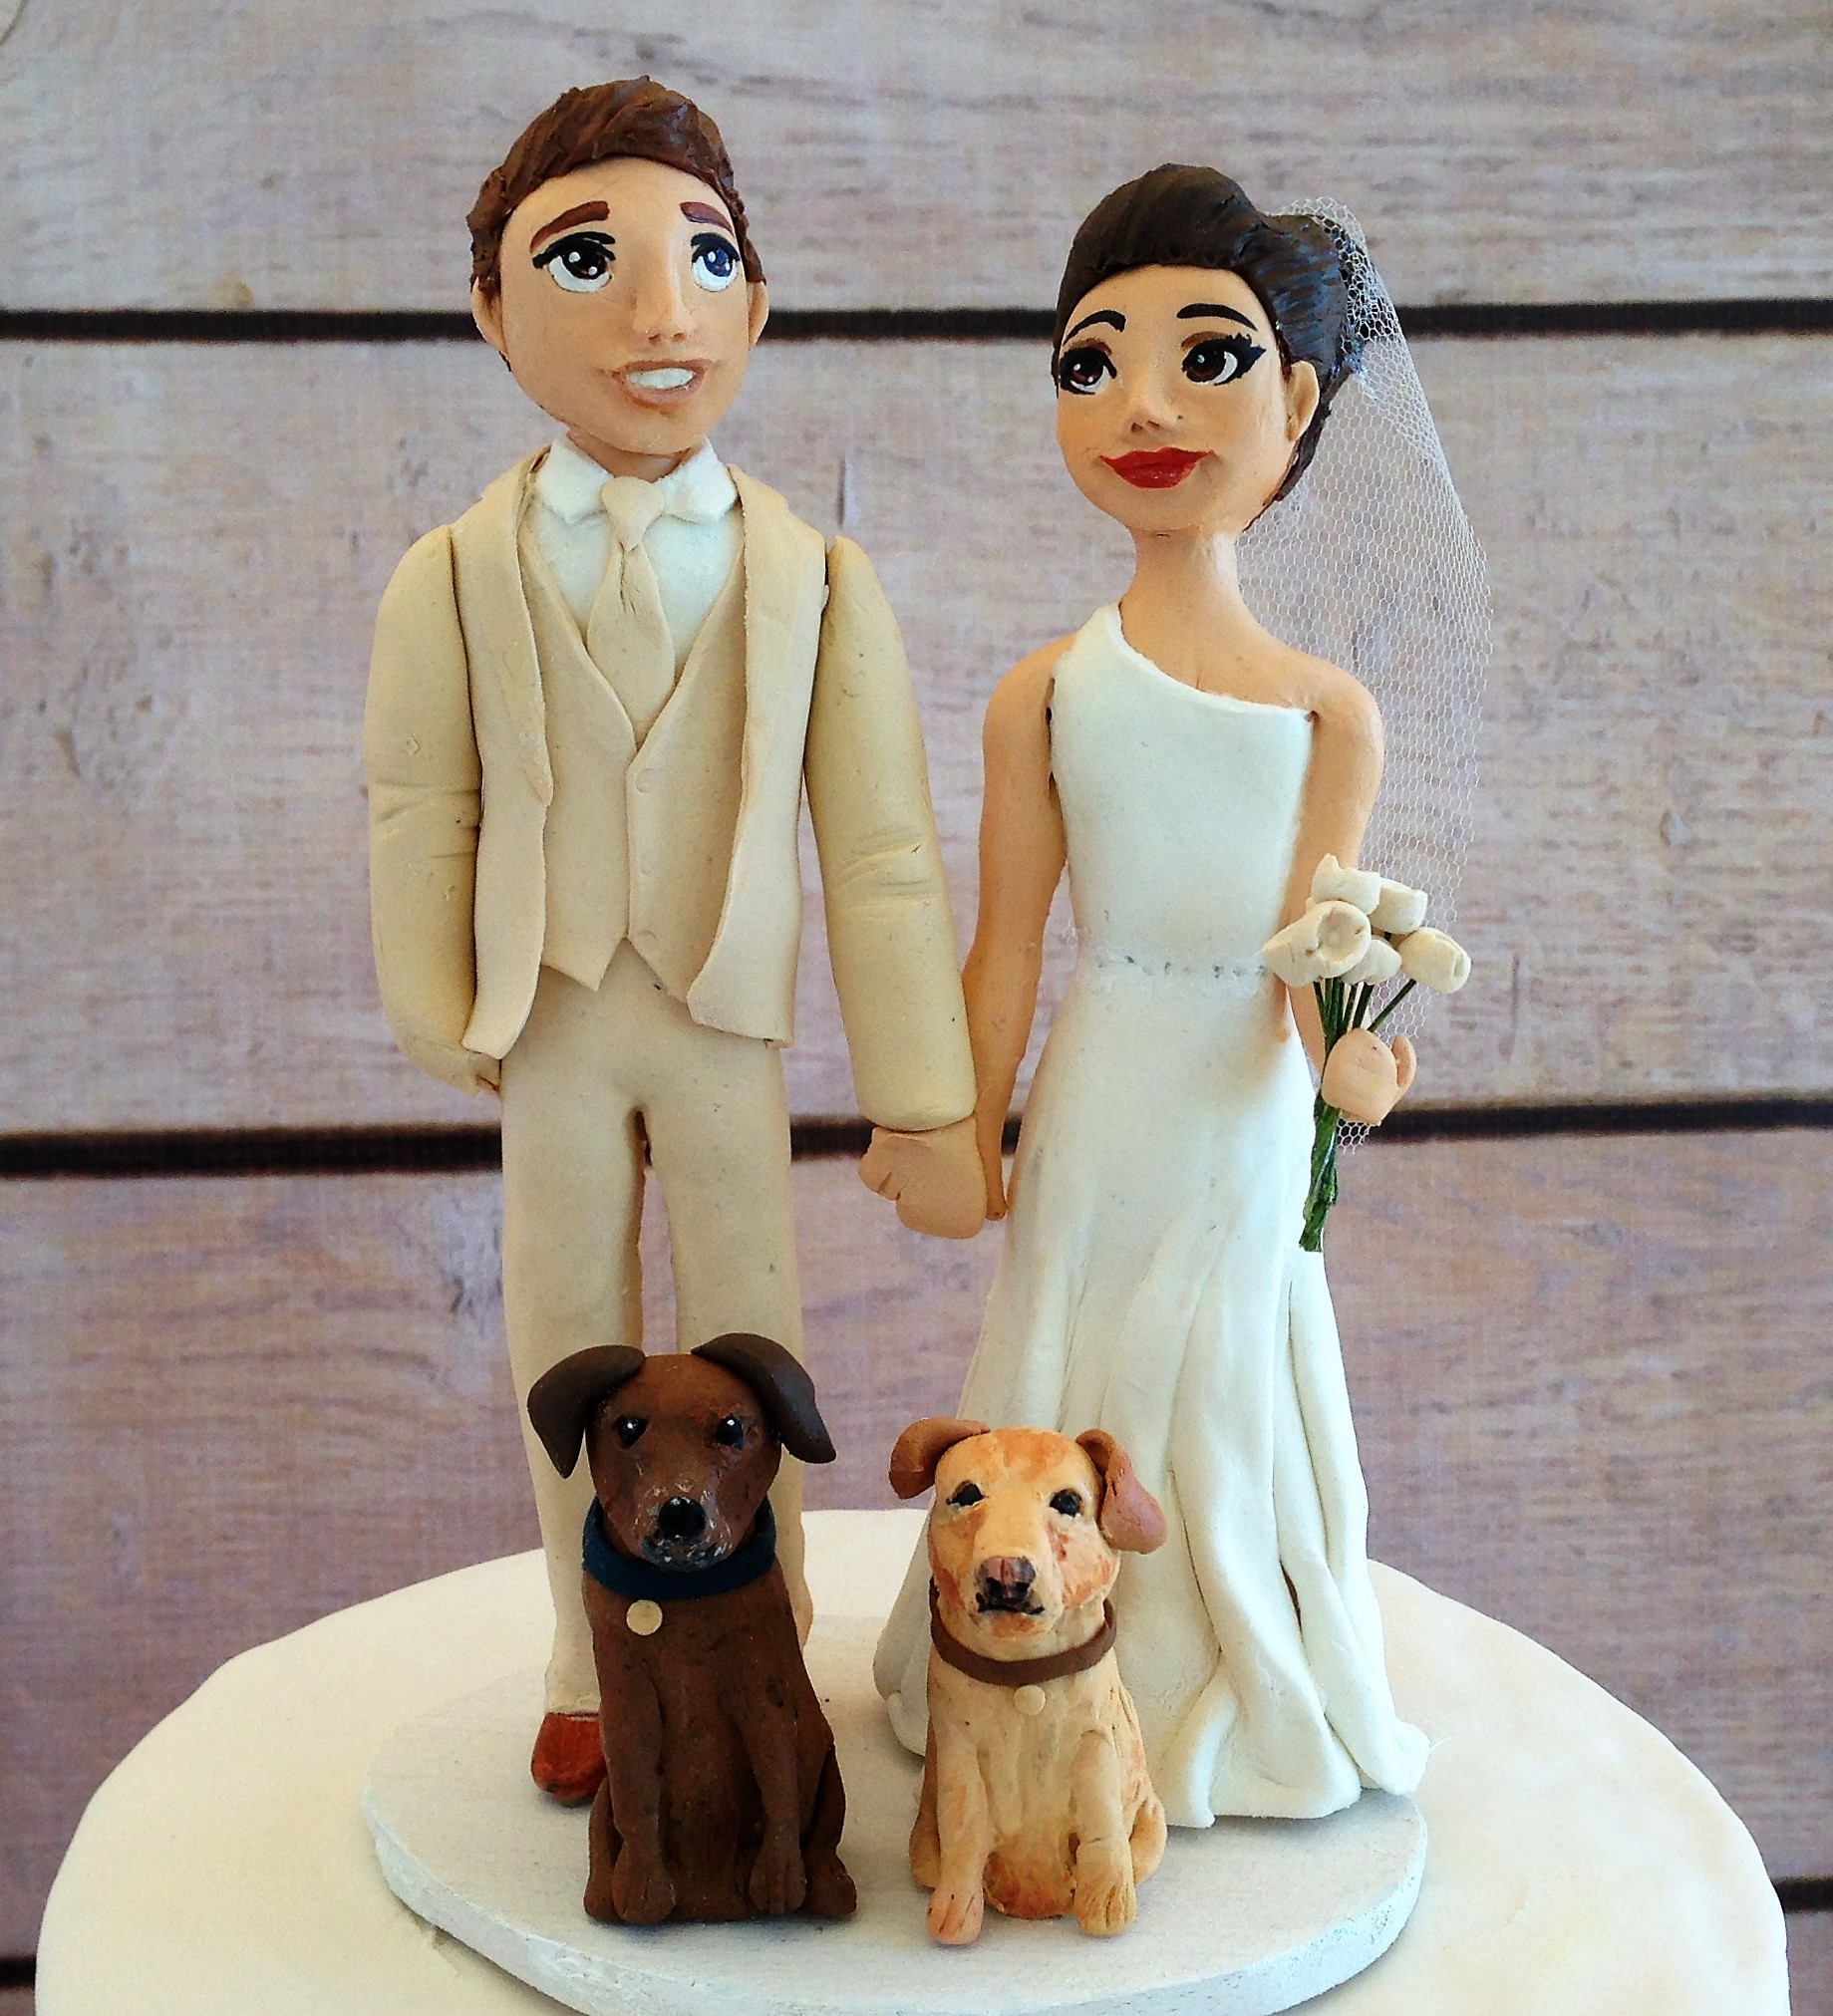 Clay figurine wedding cake topper with dogs wedding cake